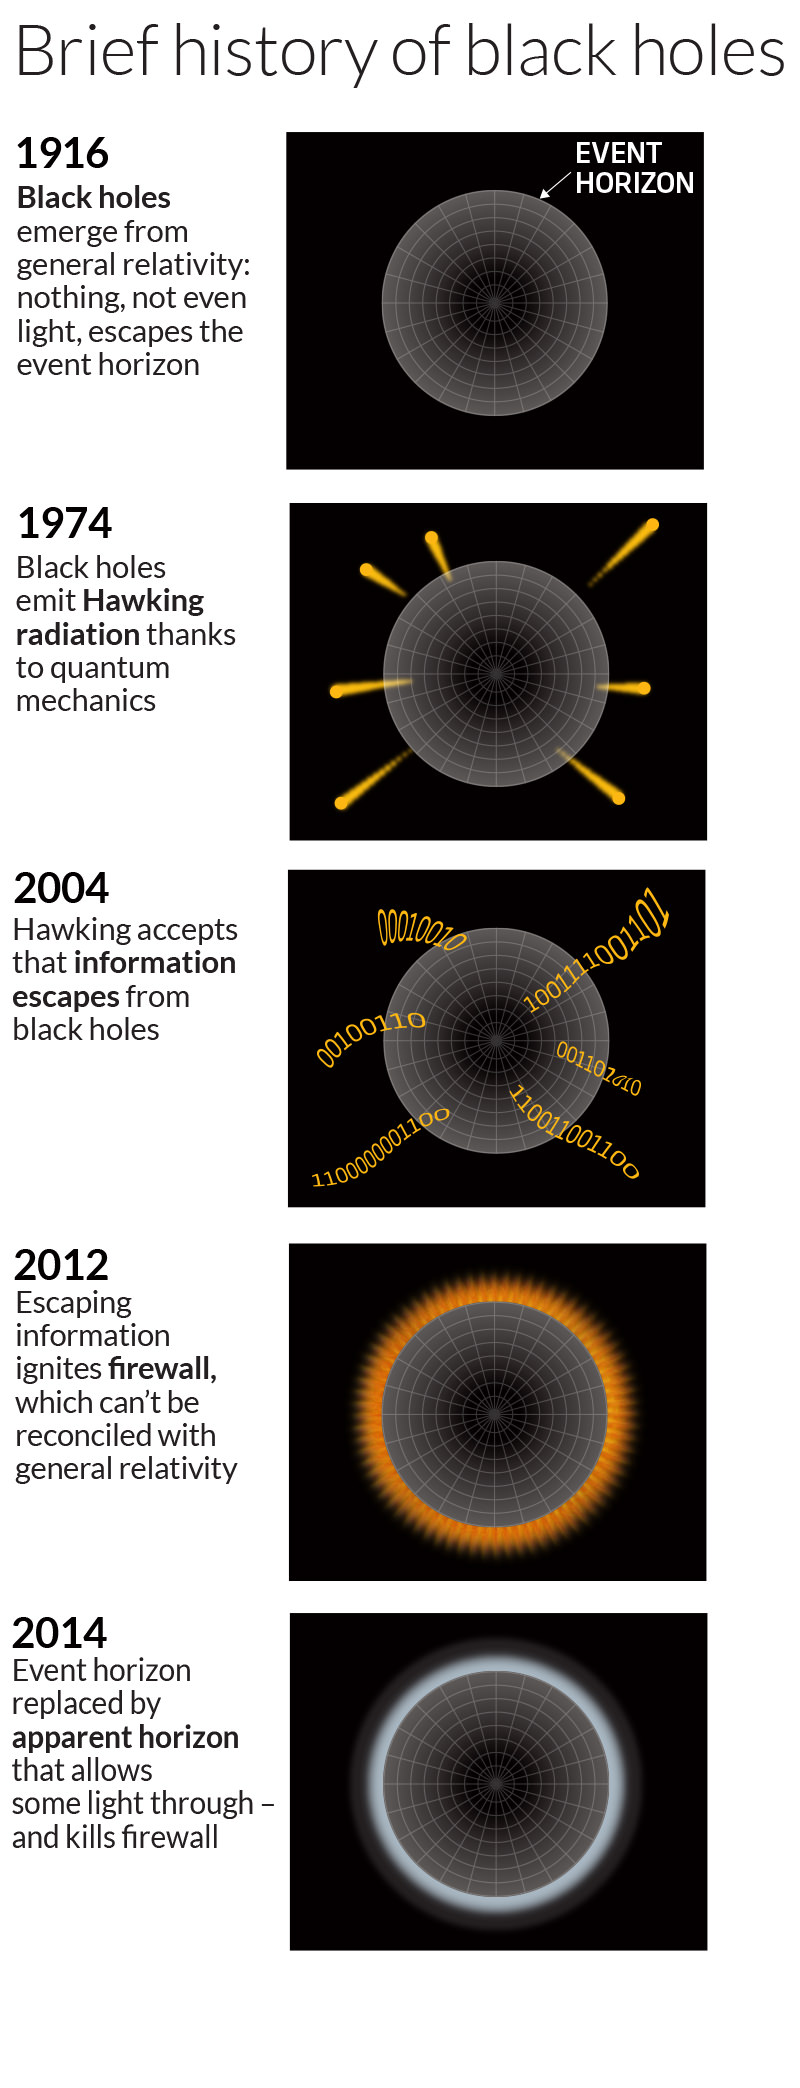 A brief history of black holes